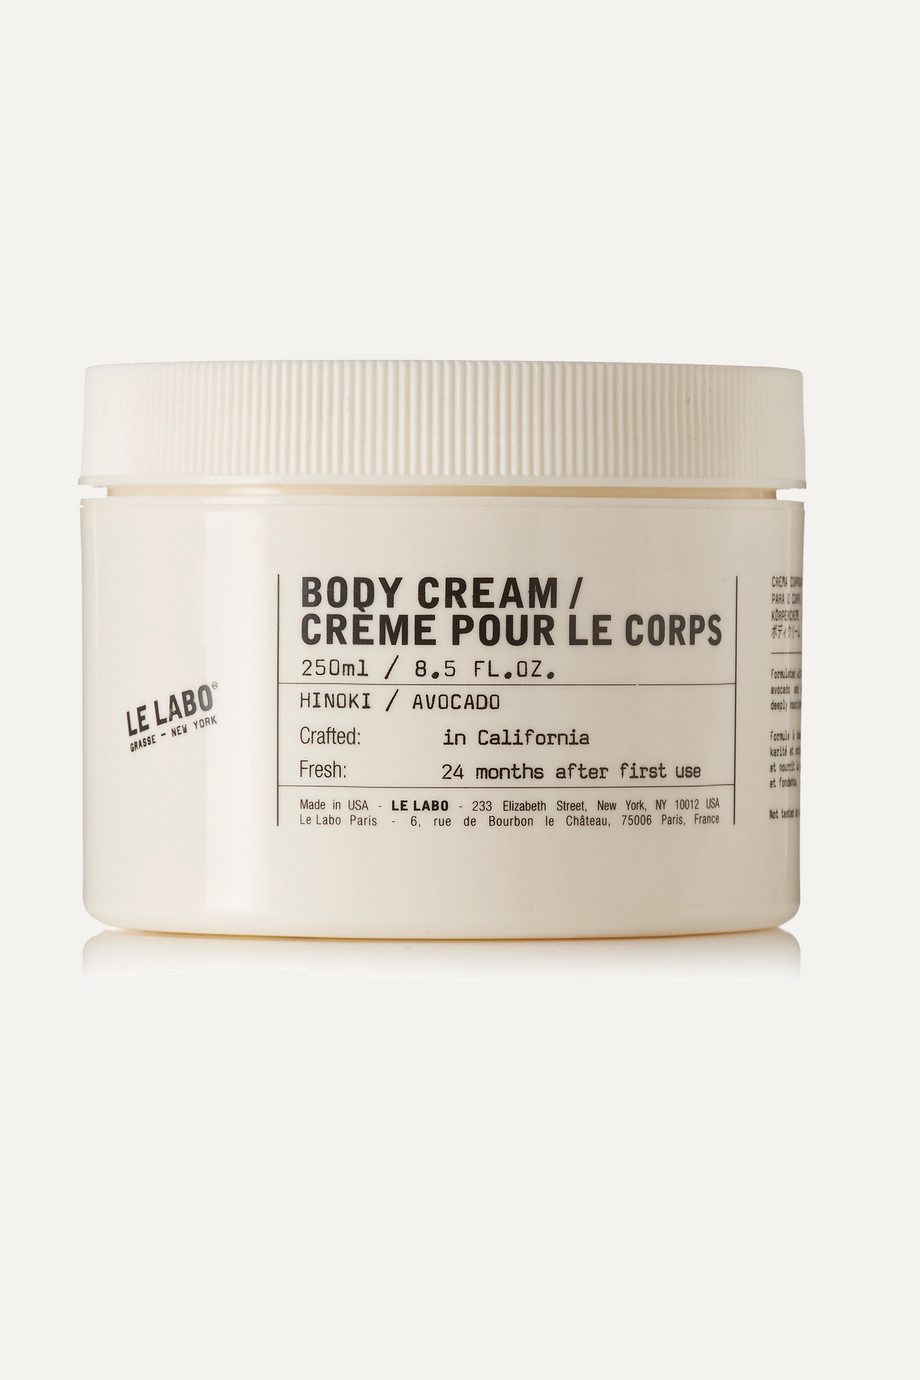 Le Labo Body Cream, 250ml